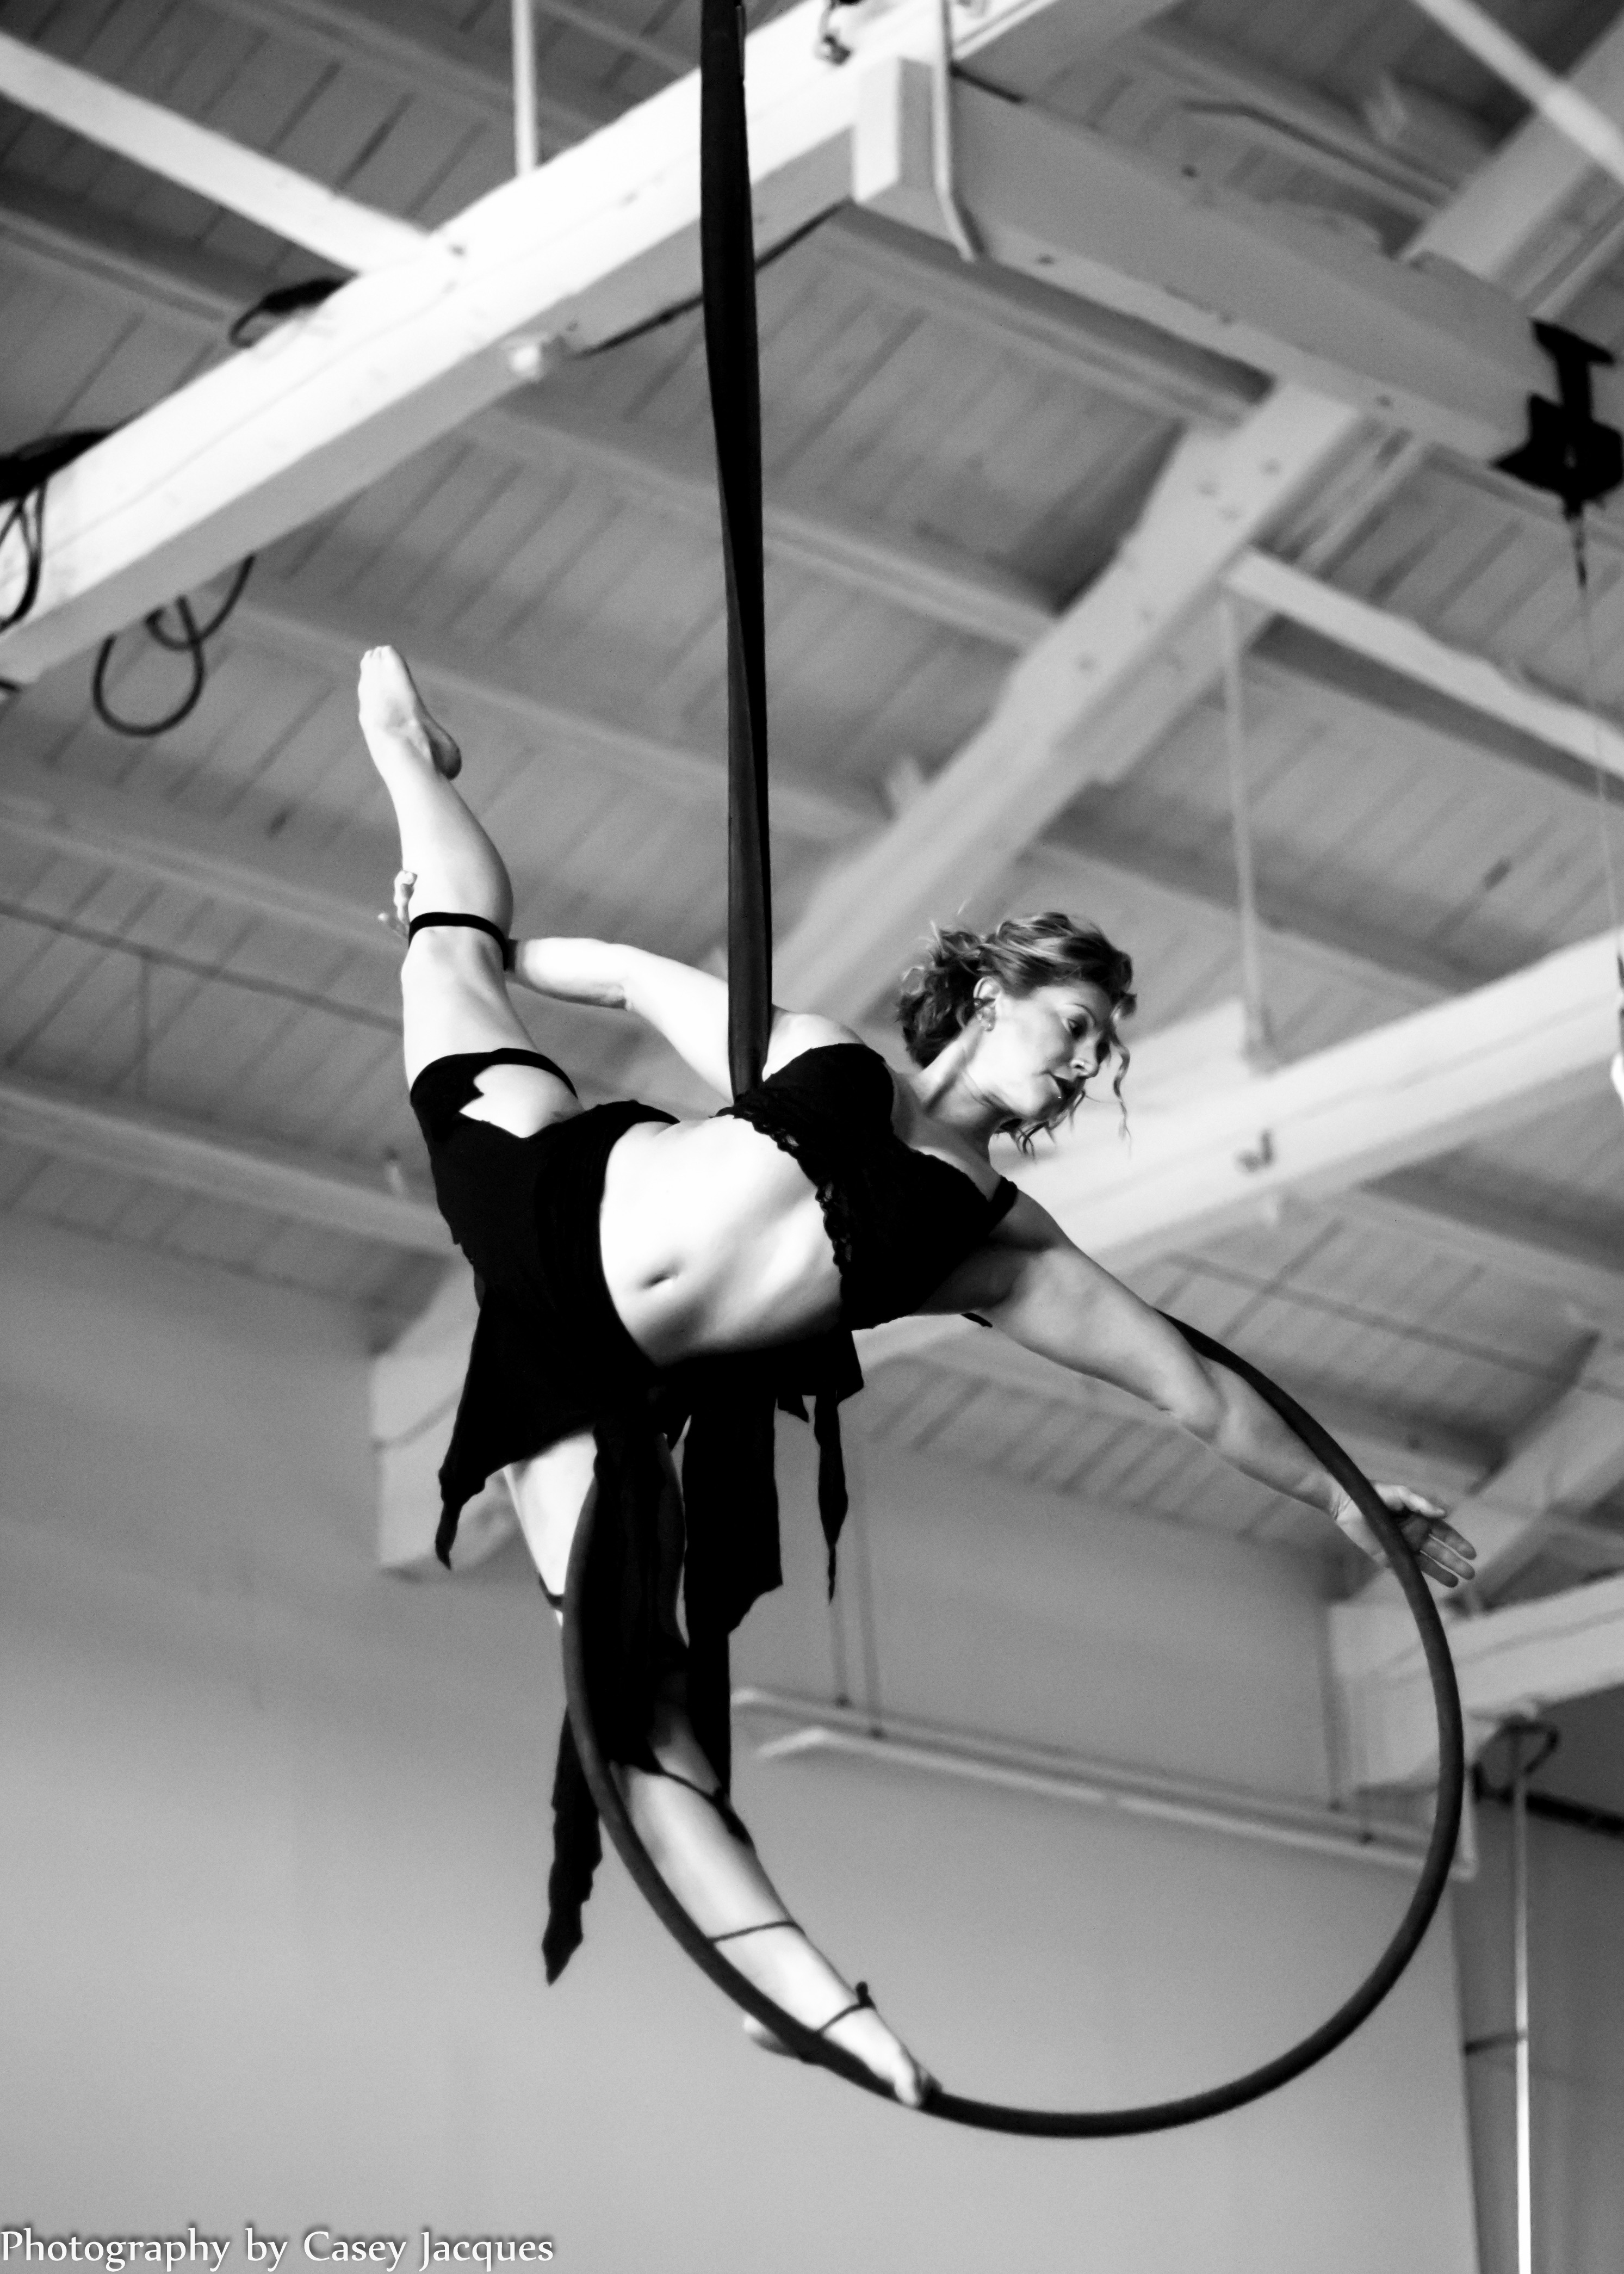 Aerial Hoop. Photo by Casey Jacques